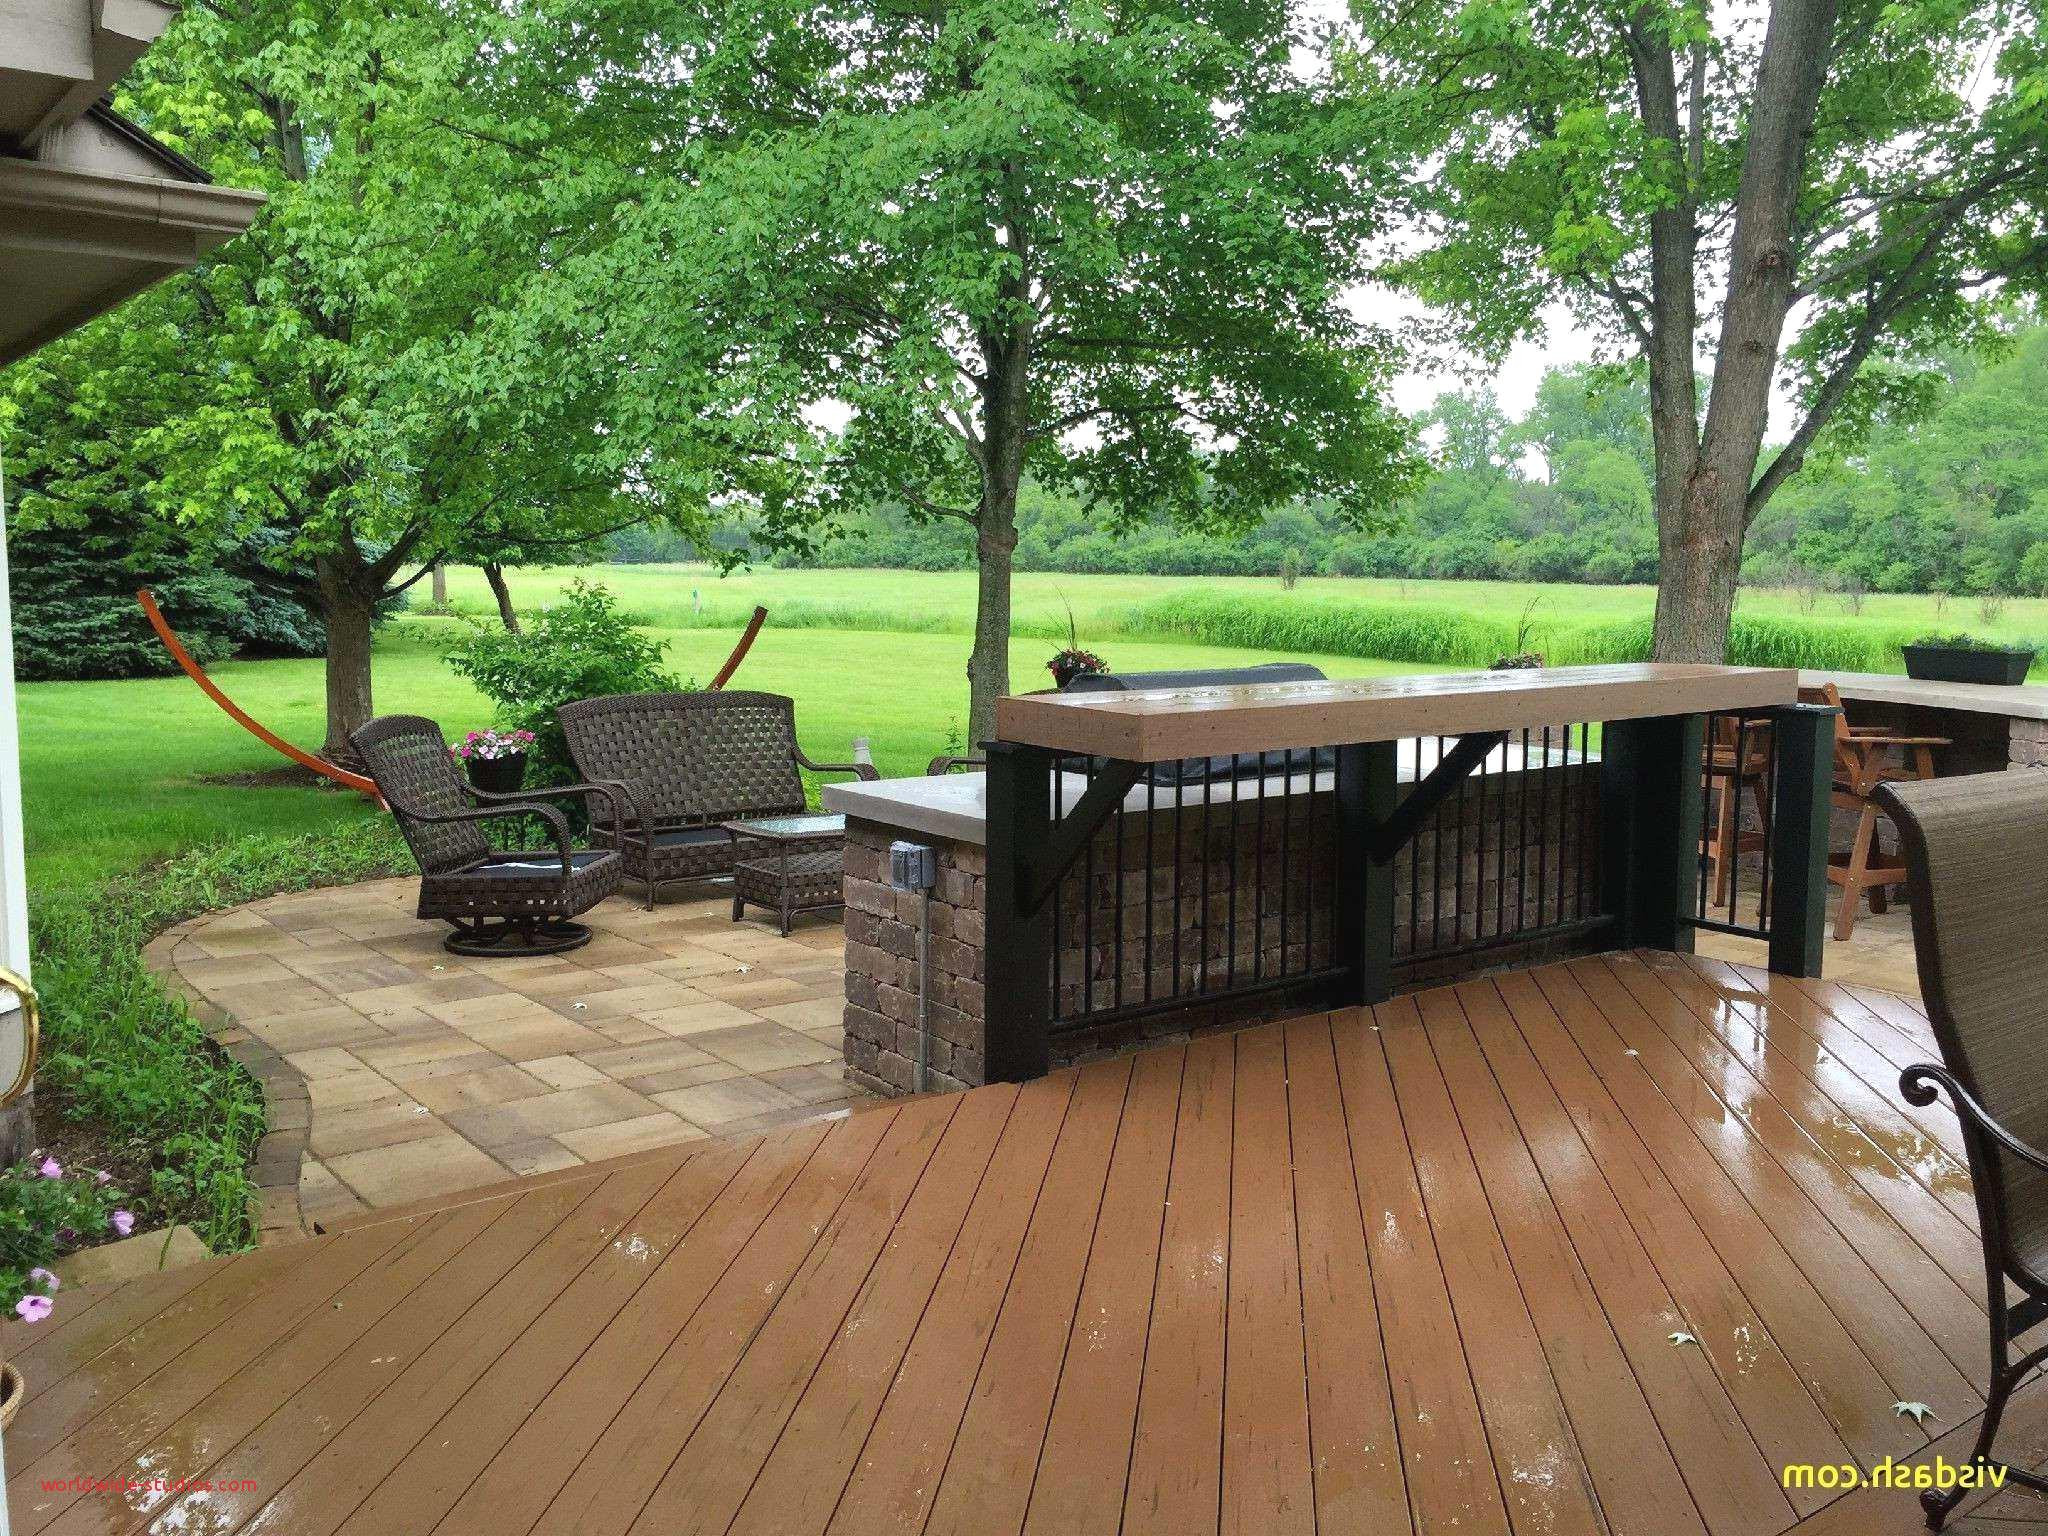 d's hardwood flooring of more diy deck ideas amazing design economyinnbeebe com in how to install a patio lovely patio decking 0d